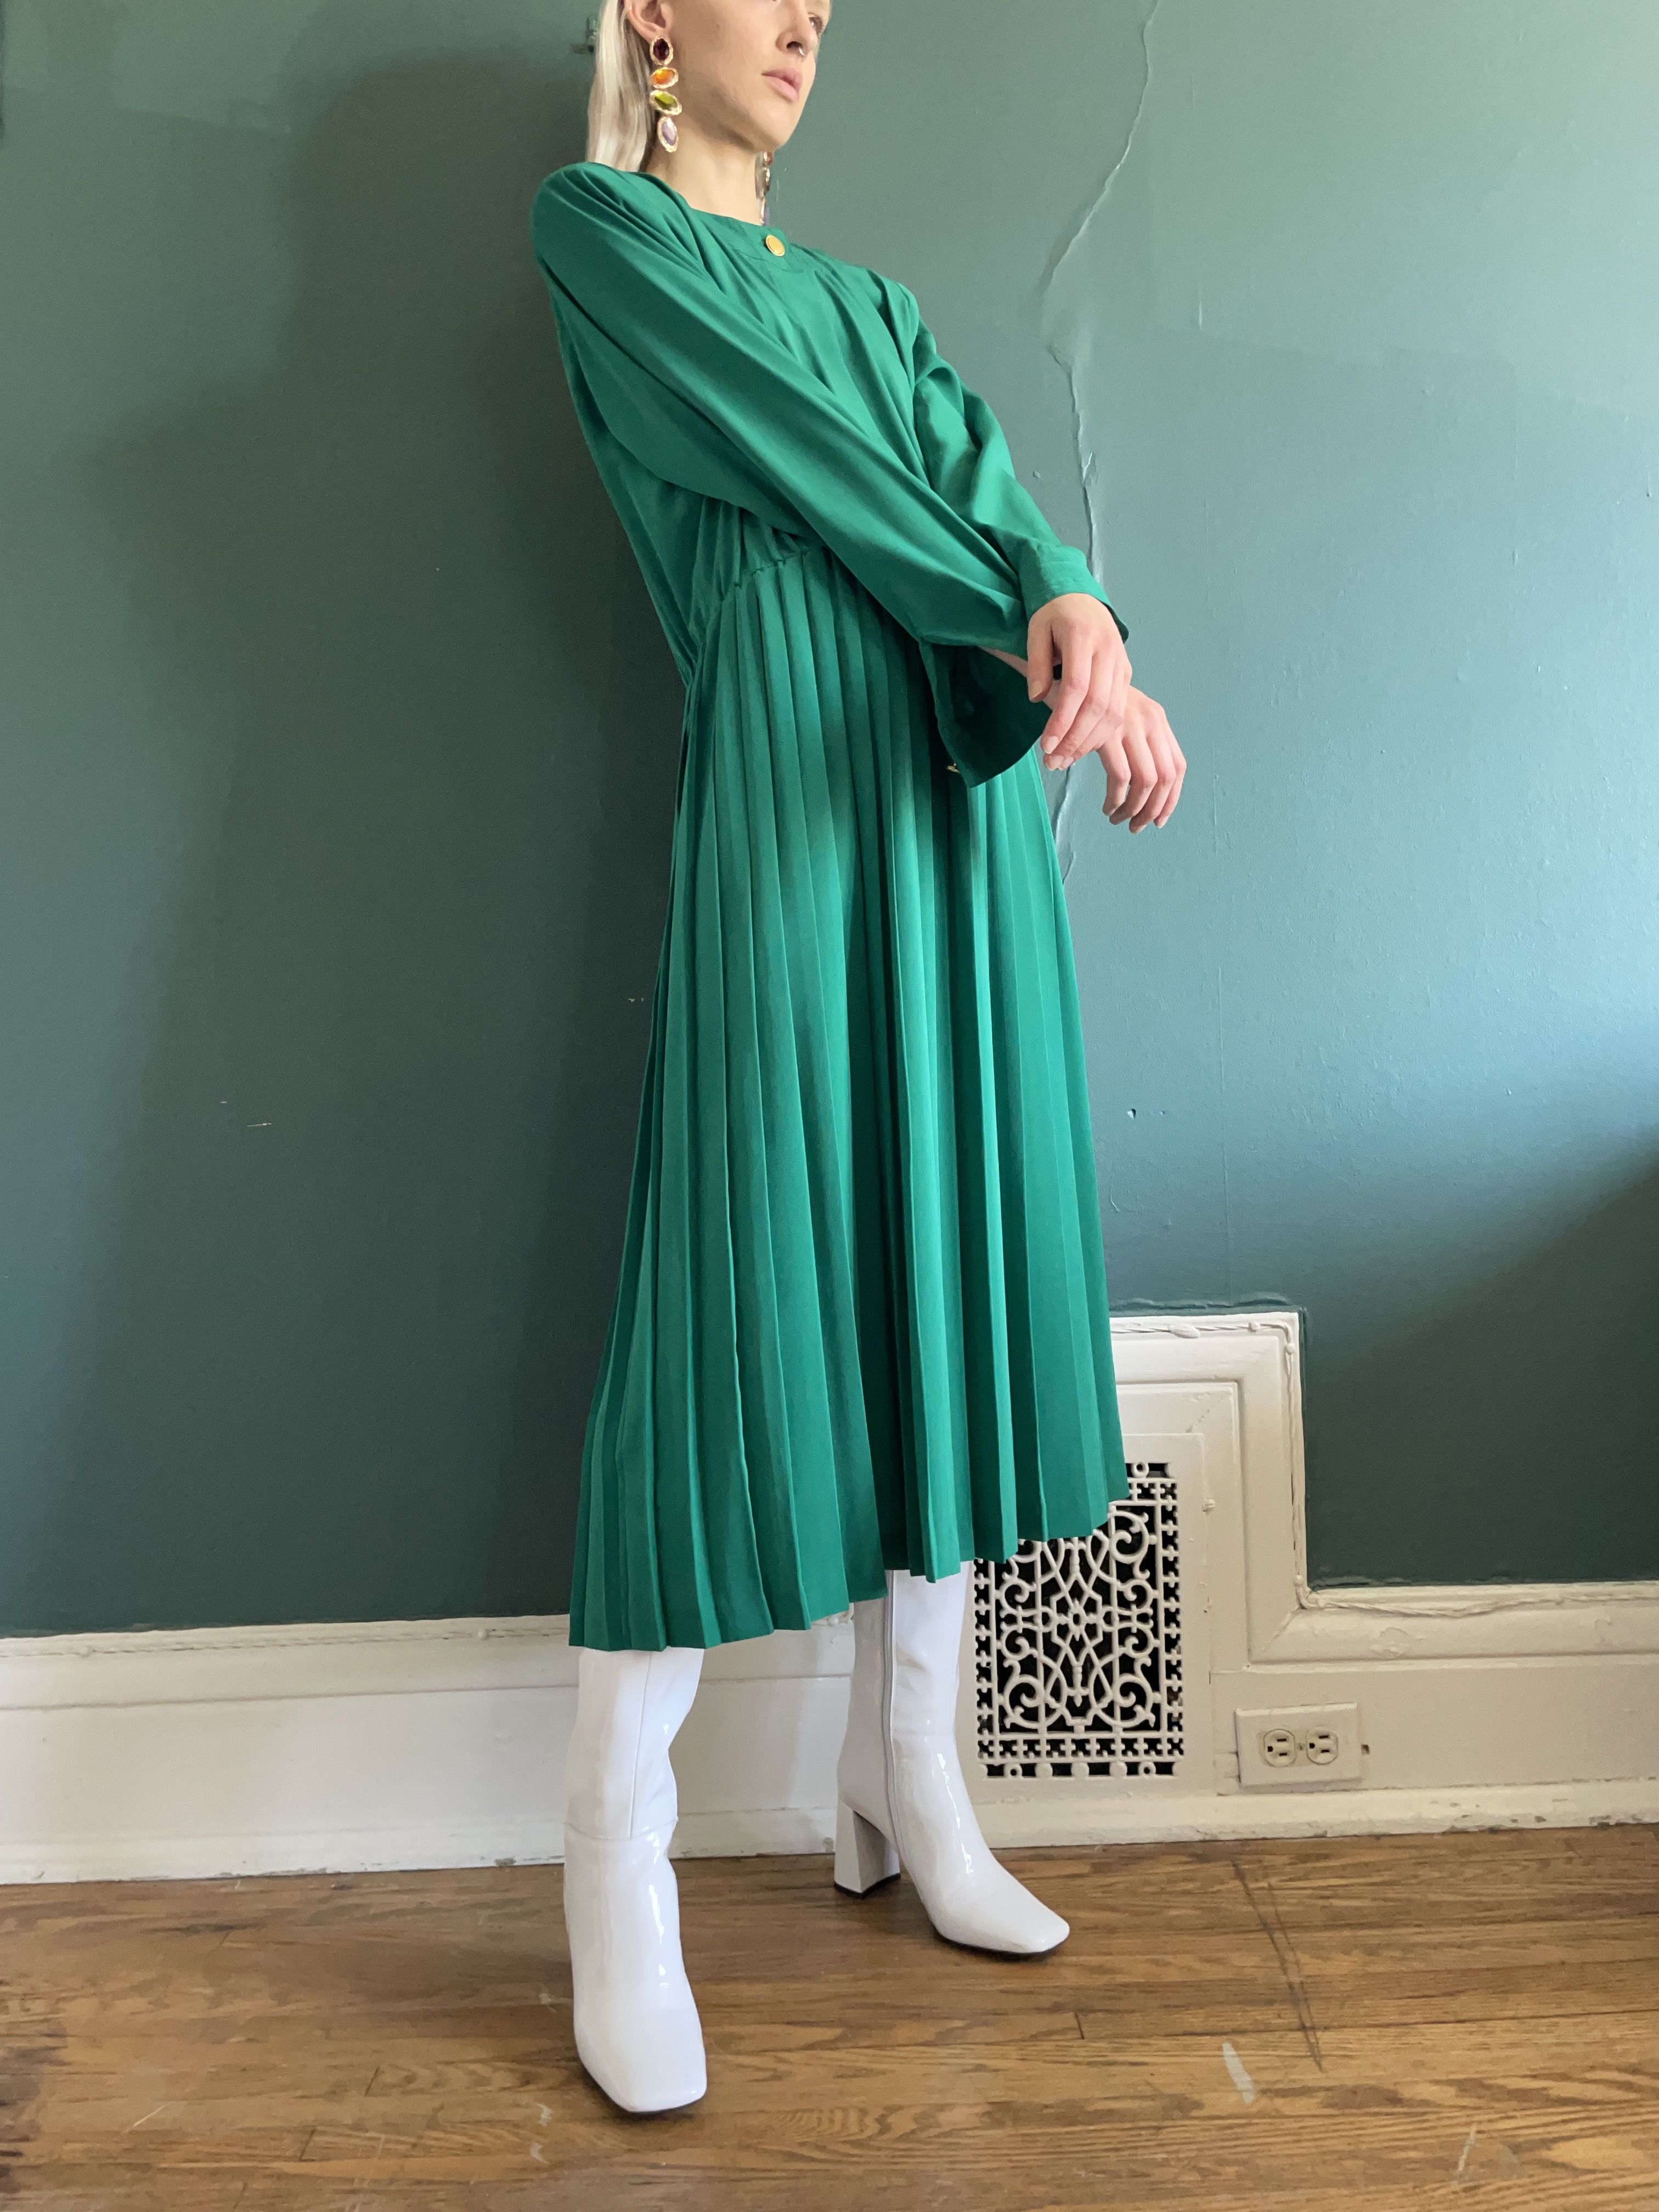 An 80s vintage dress in a lovely kelly green with a pleated skirt. Drops mic. #vintage #vintagefashion #vintagestyle #vintageaesthetic #80sfashion #80sstyle #80saesthetic